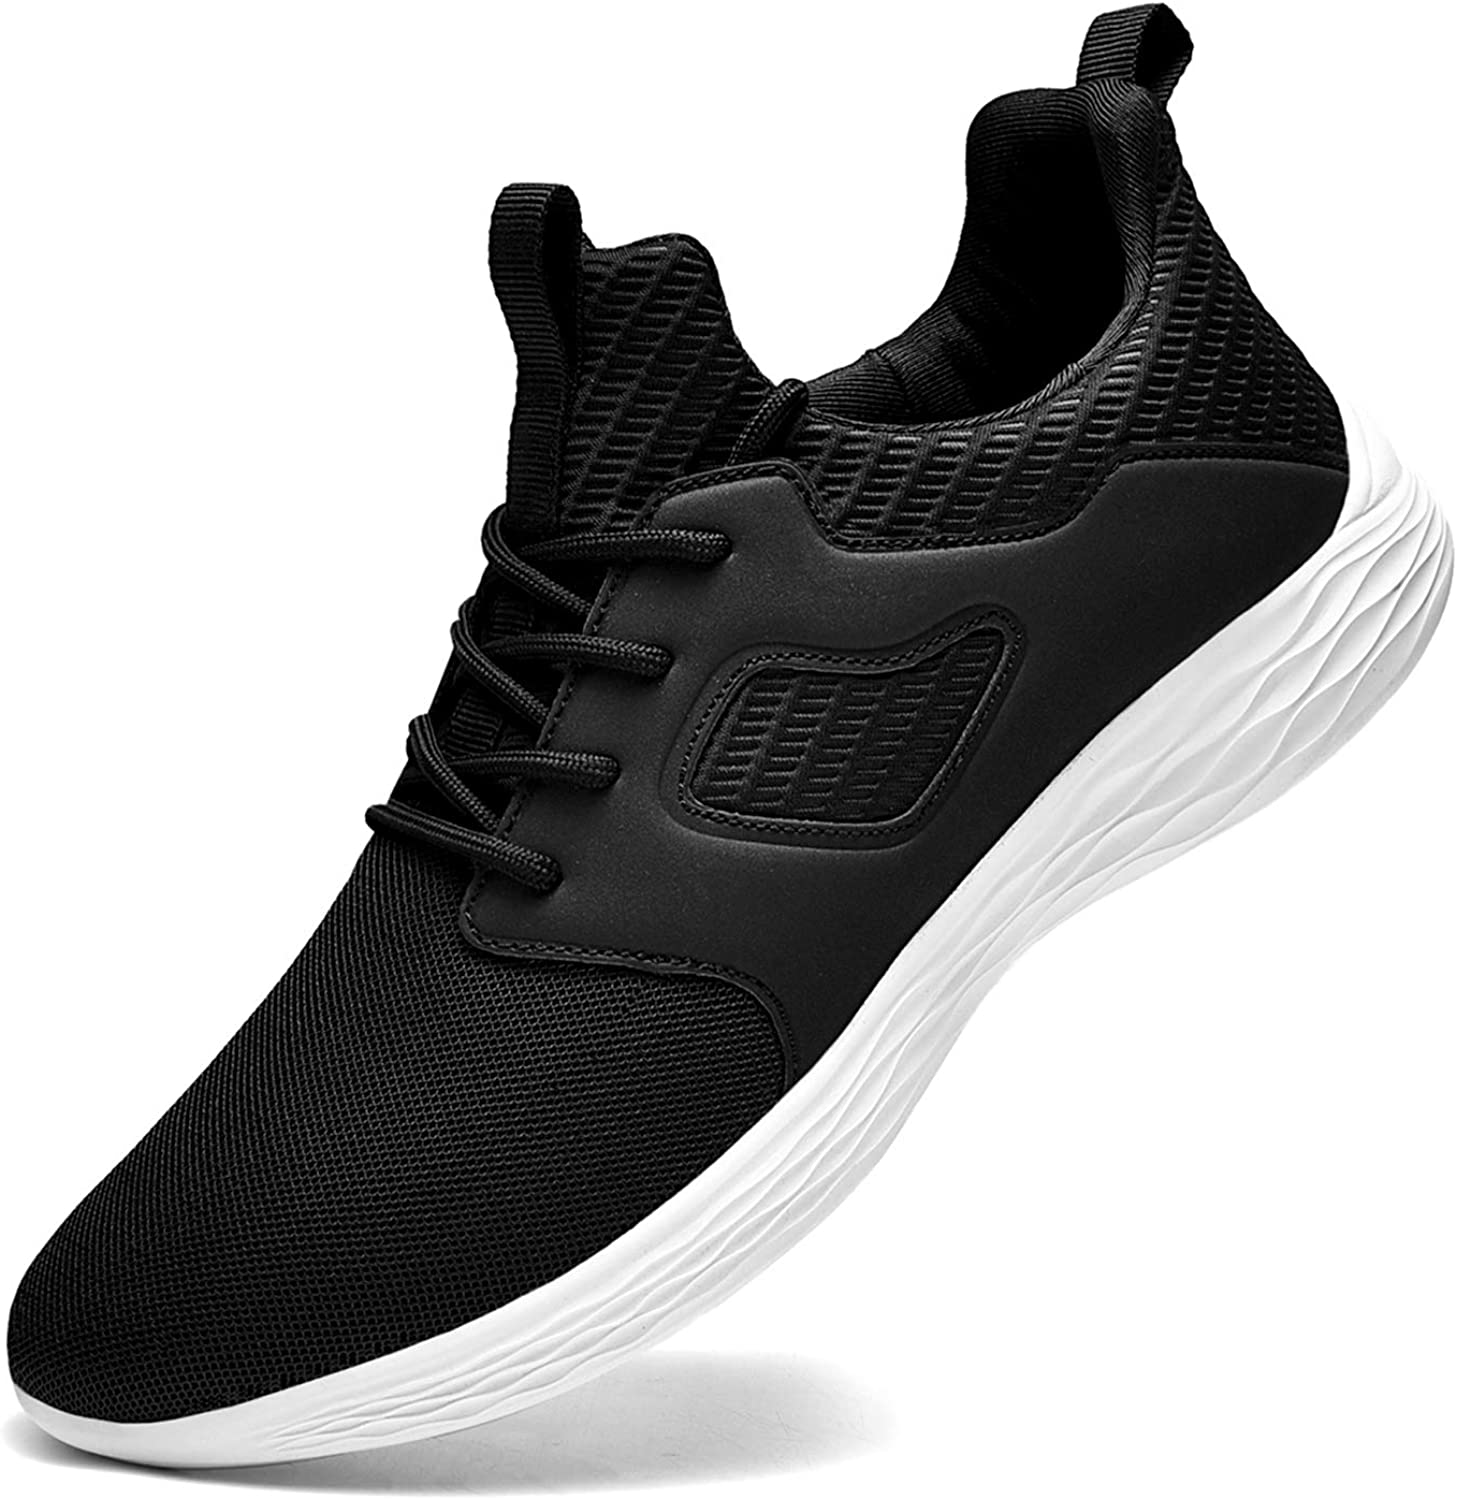 DierCosy Sneakers for Men Lightweight Gym Shoes Mens Tennis Shoes Non Slip Walking Shoes Athletic Running Slip-On Shoes